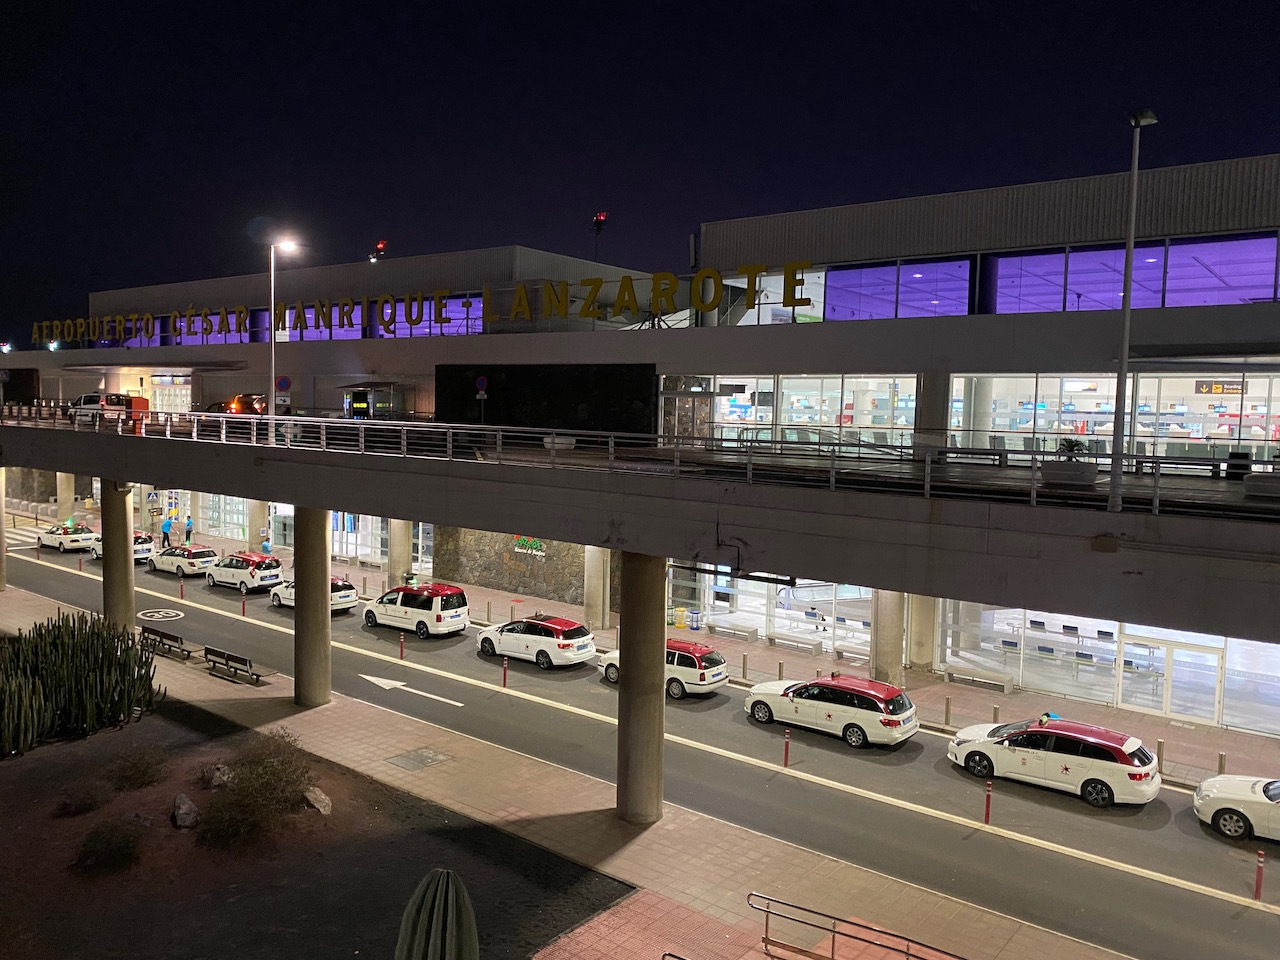 Taxis at Lanzarote Airport